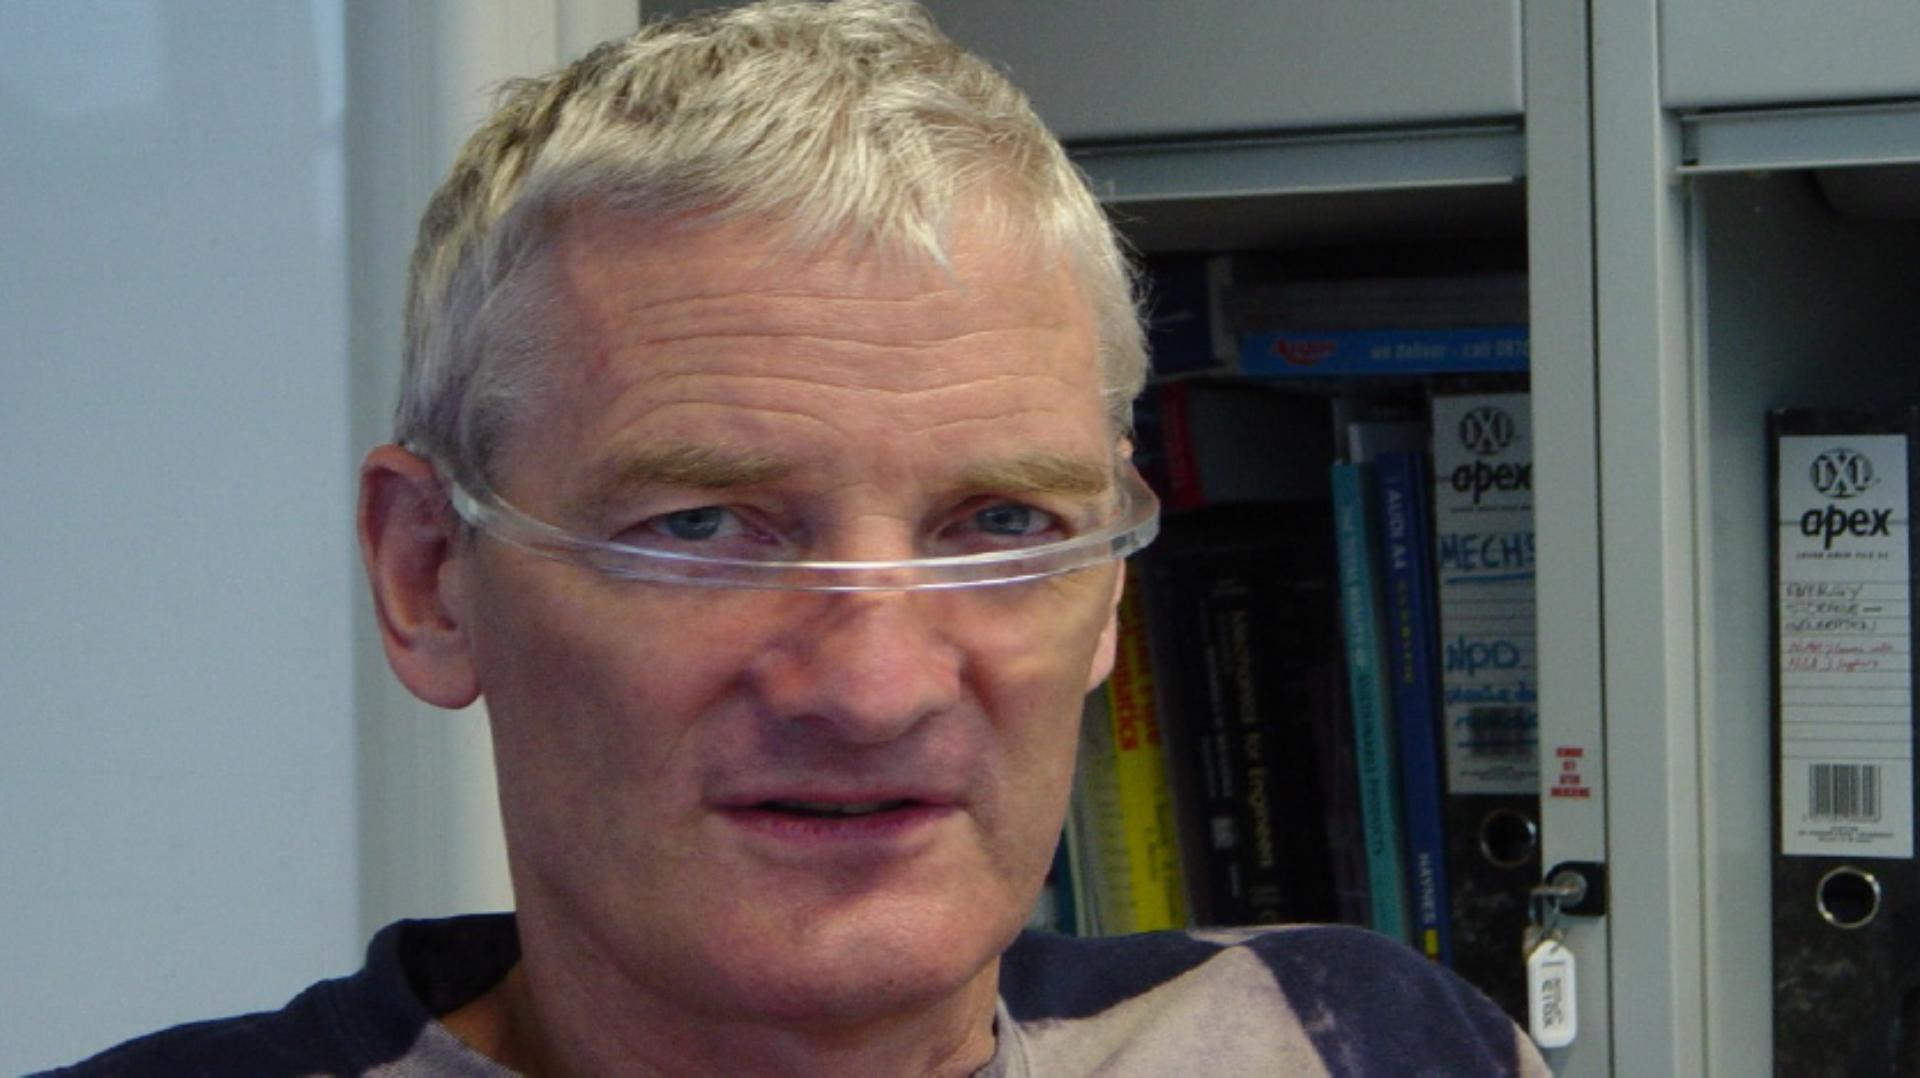 Close up portrait photo of James Dyson wearing the Halo prototype